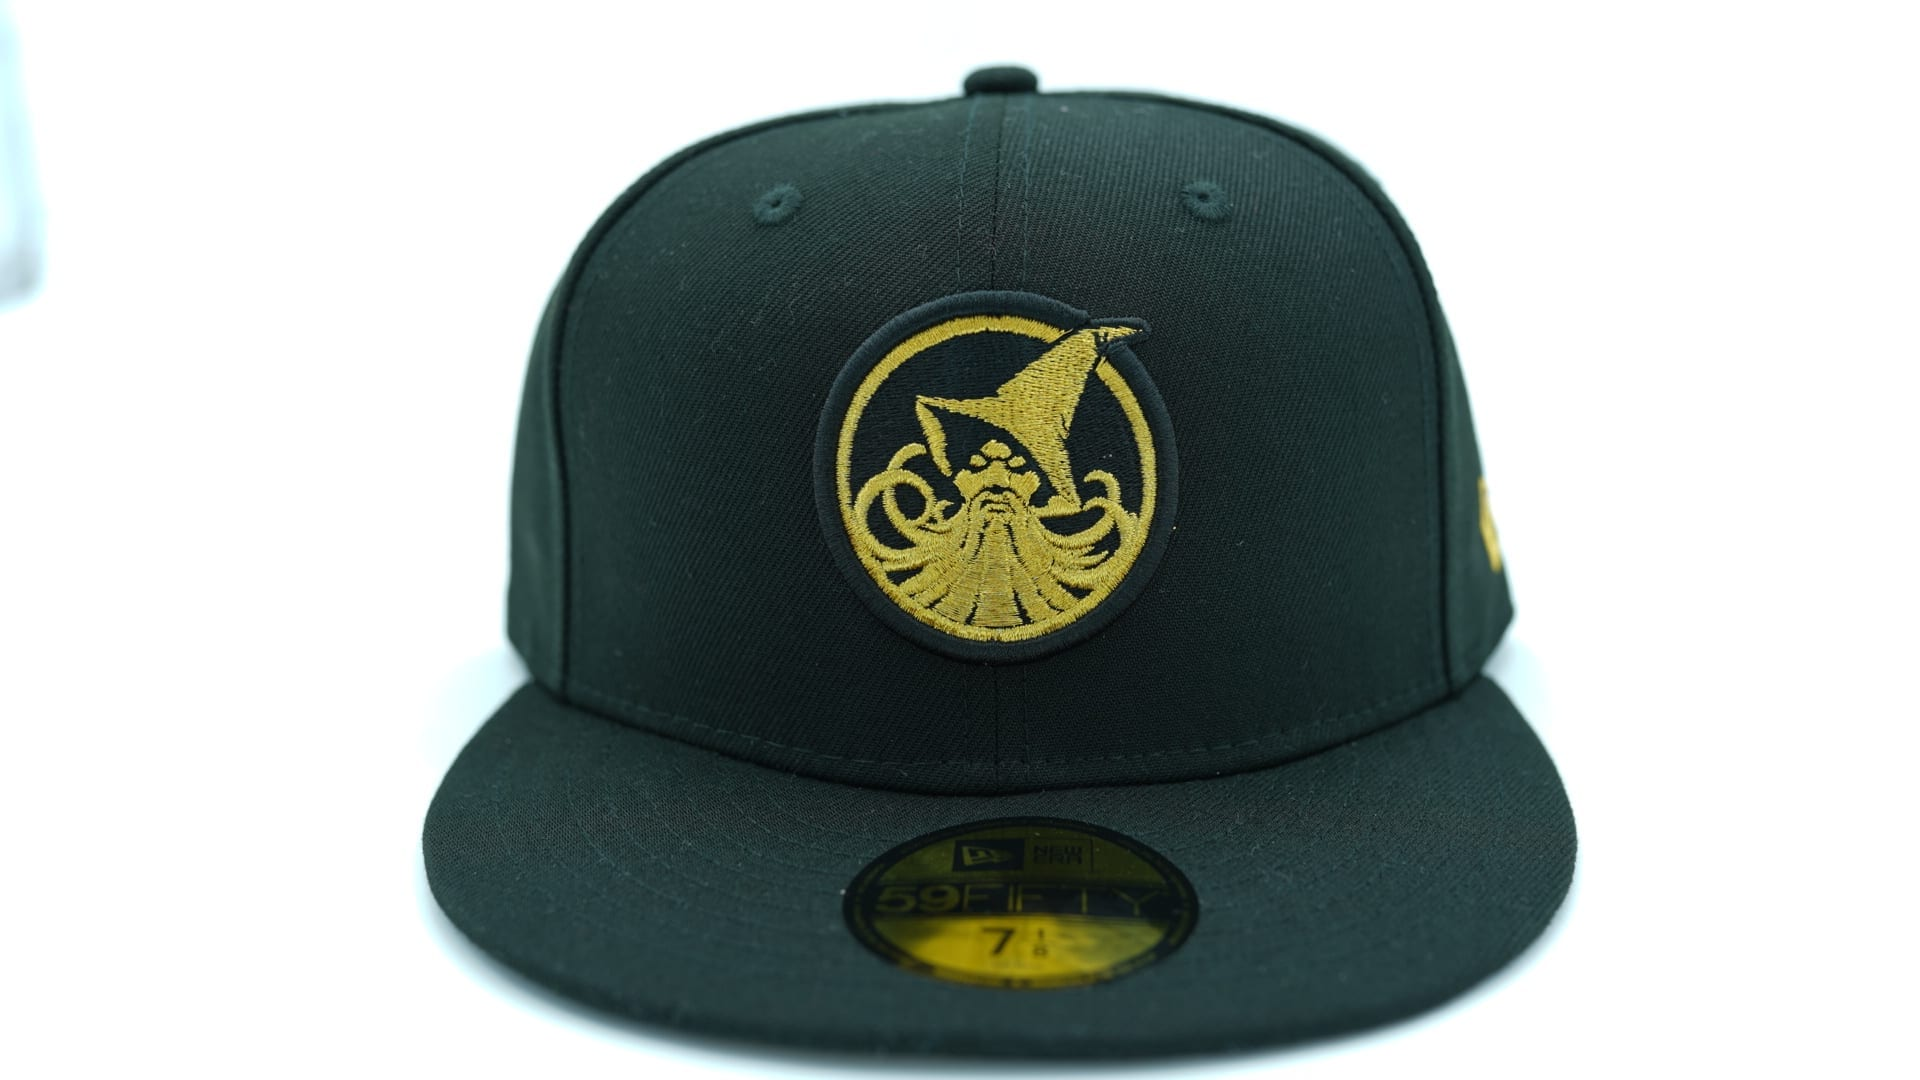 CLSC Logo 59Fifty Fitted Cap by NEW ERA x CLSC x IN4MATION